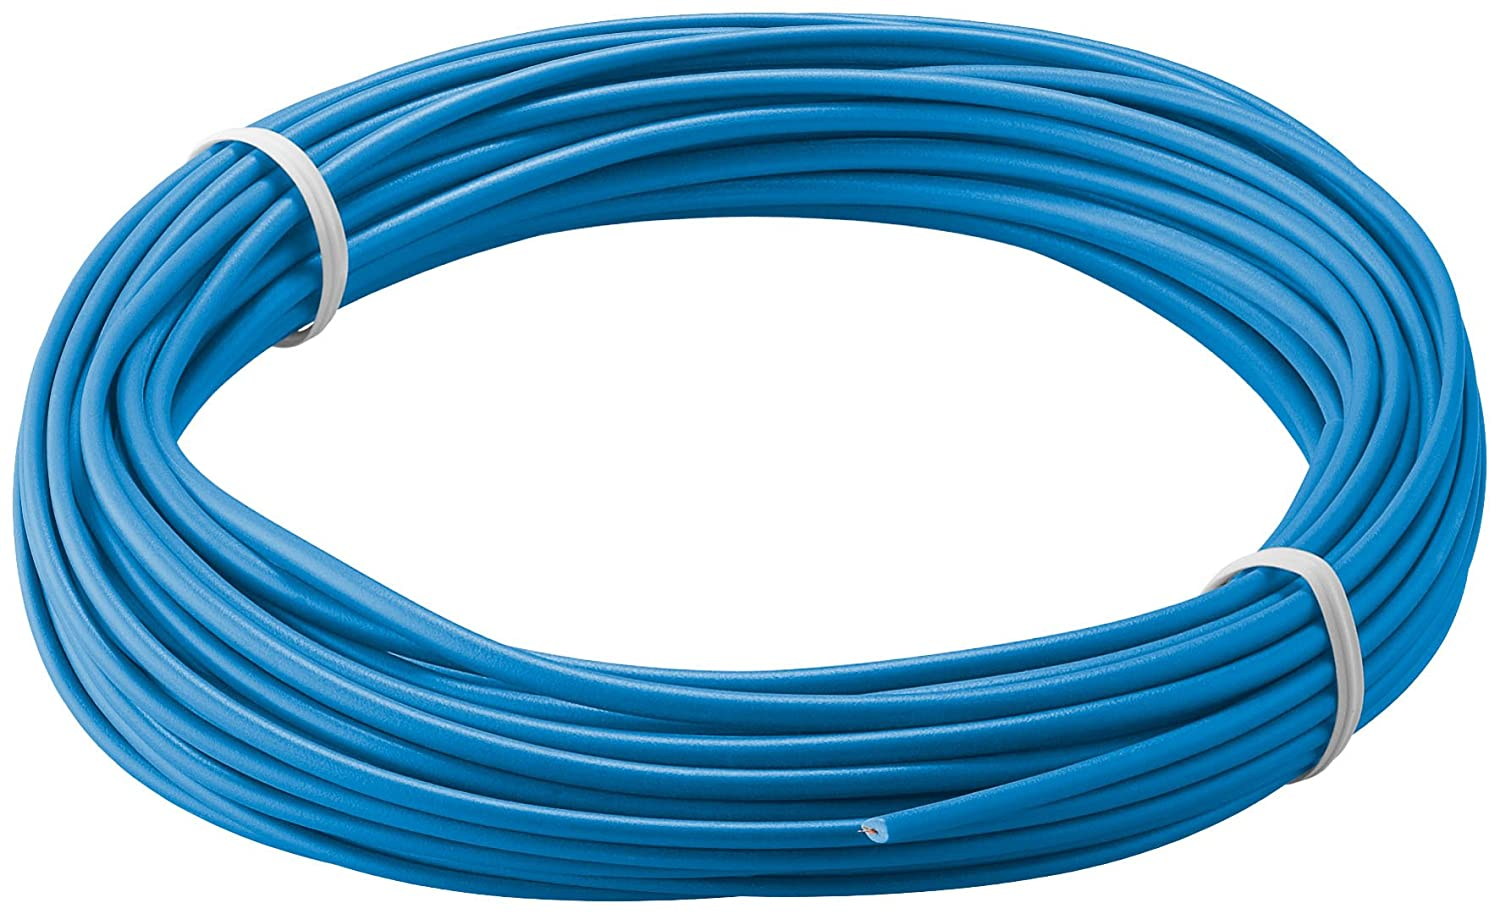 Insulated Copper Wire, Blue, 10 M (Pack of 1 Mehrdrahtig 18 x 0.1 mm ...